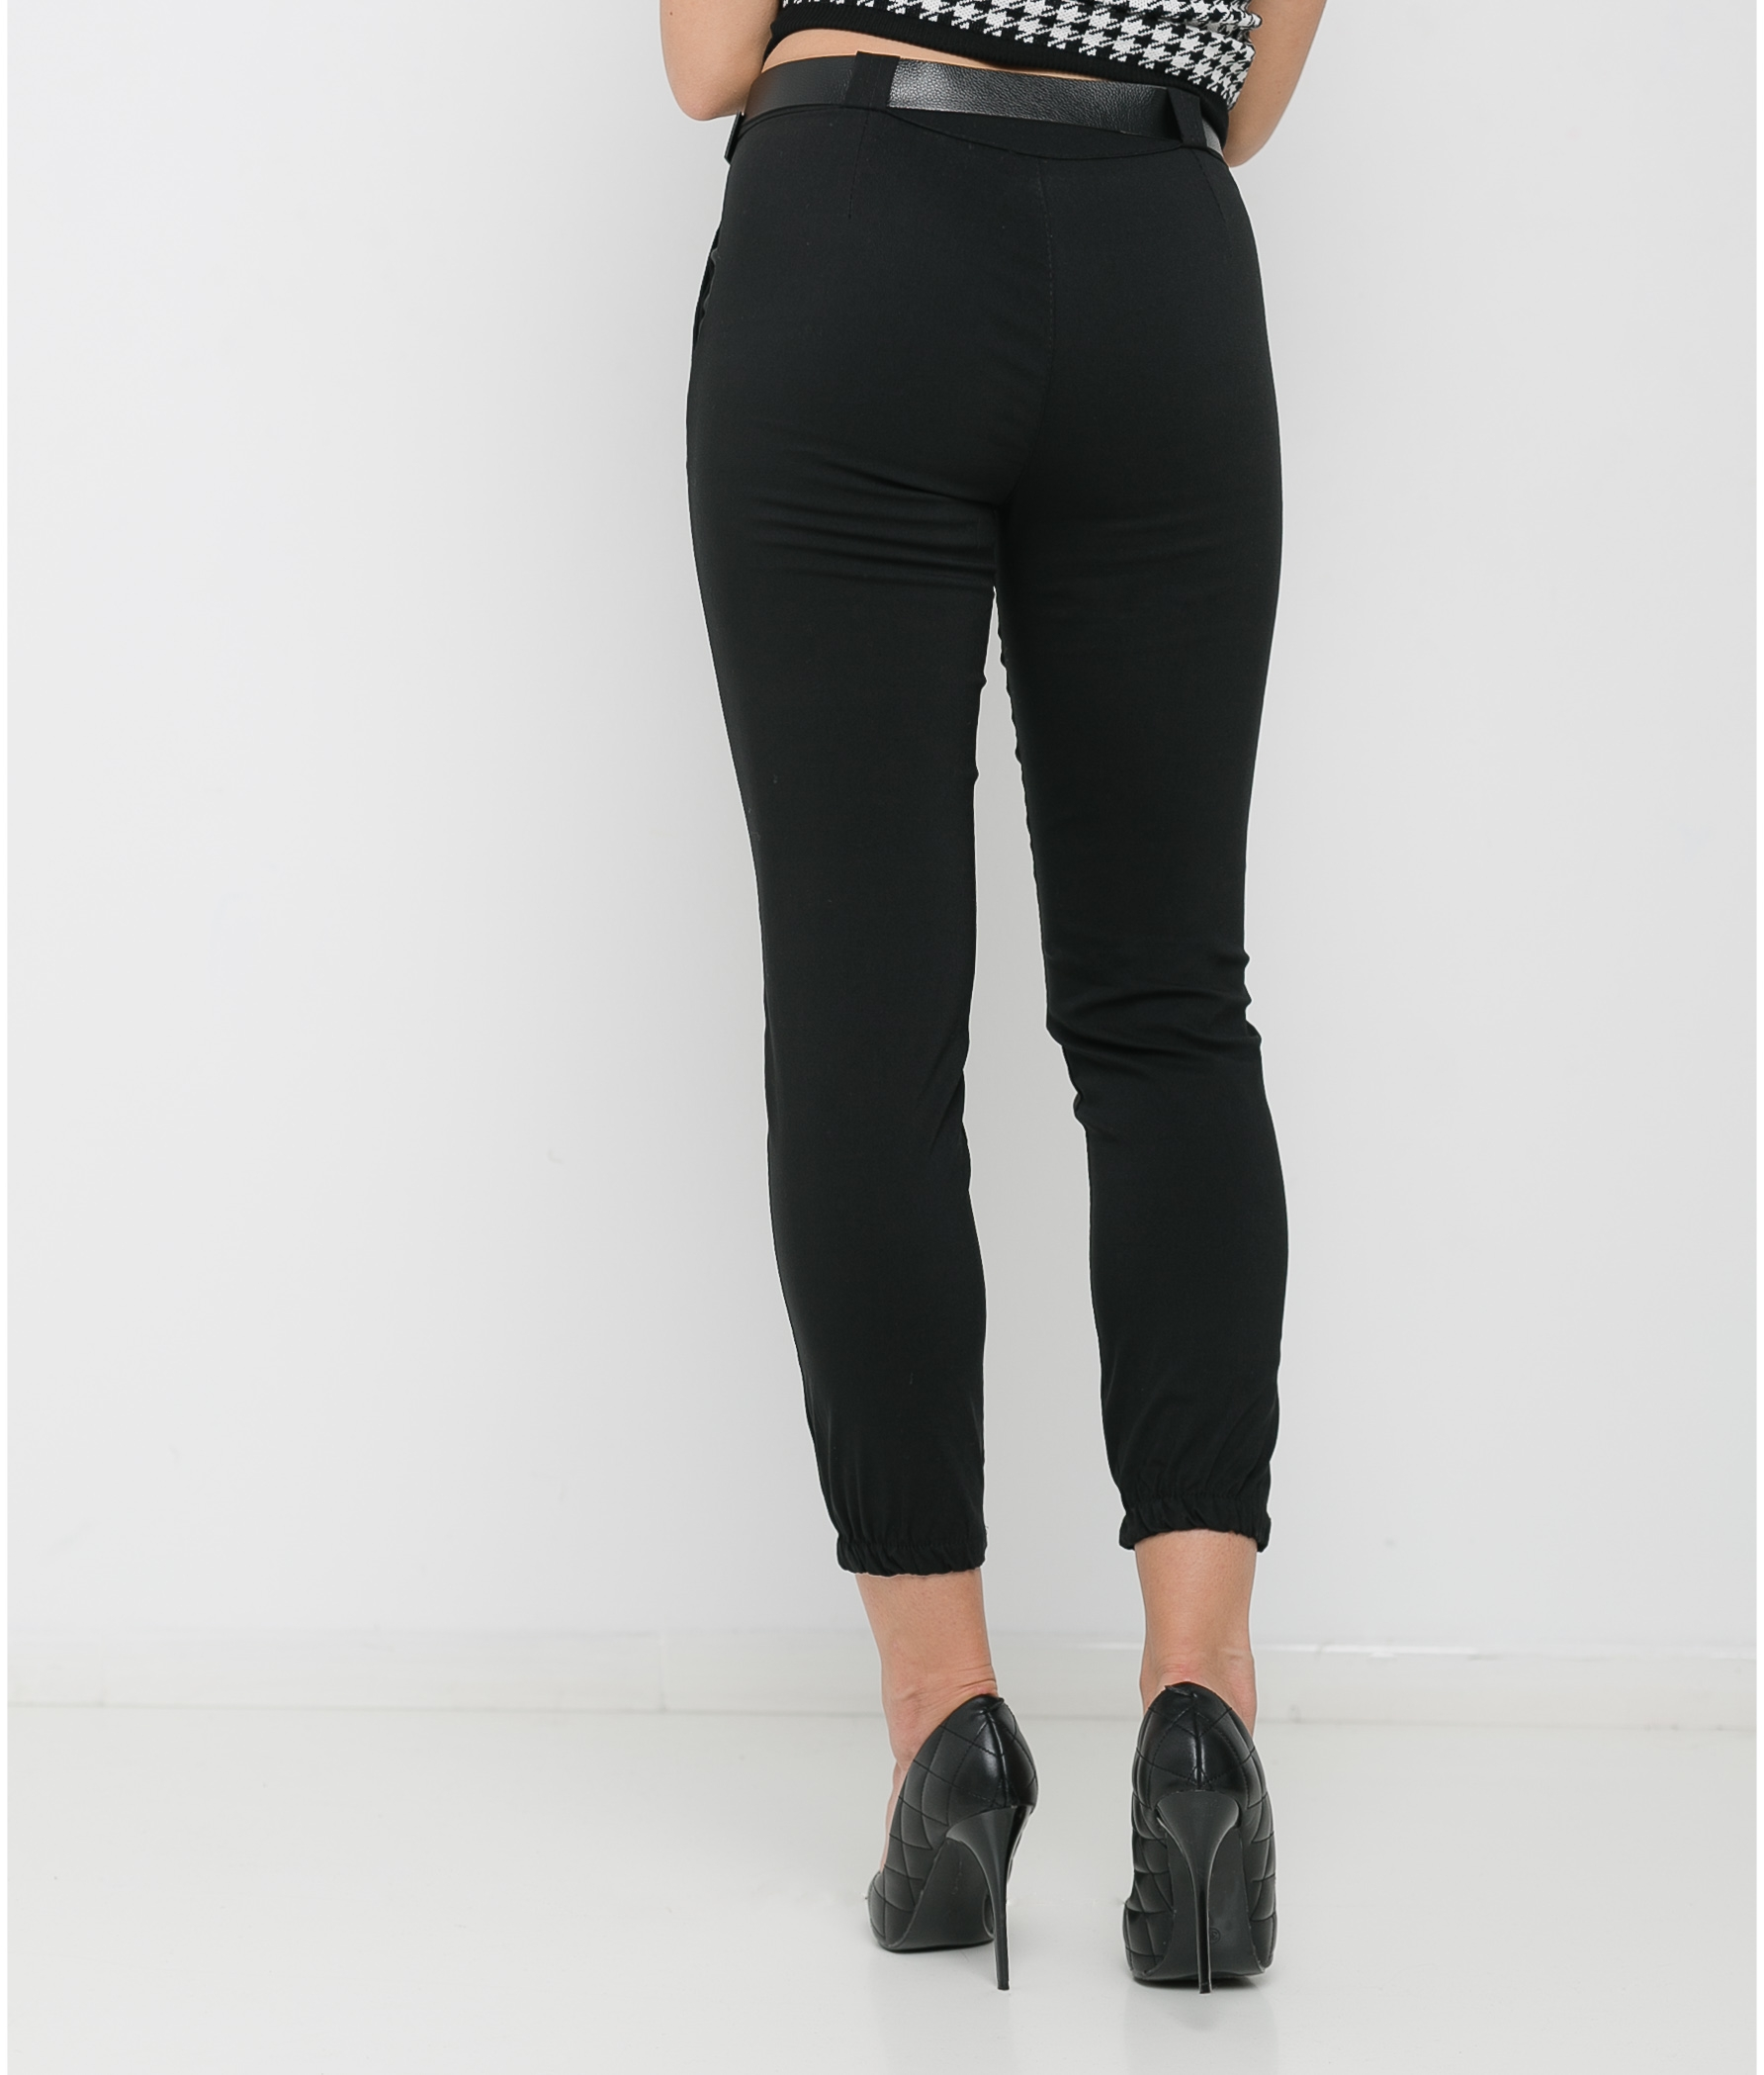 PANTALON OLIMP - NOIR